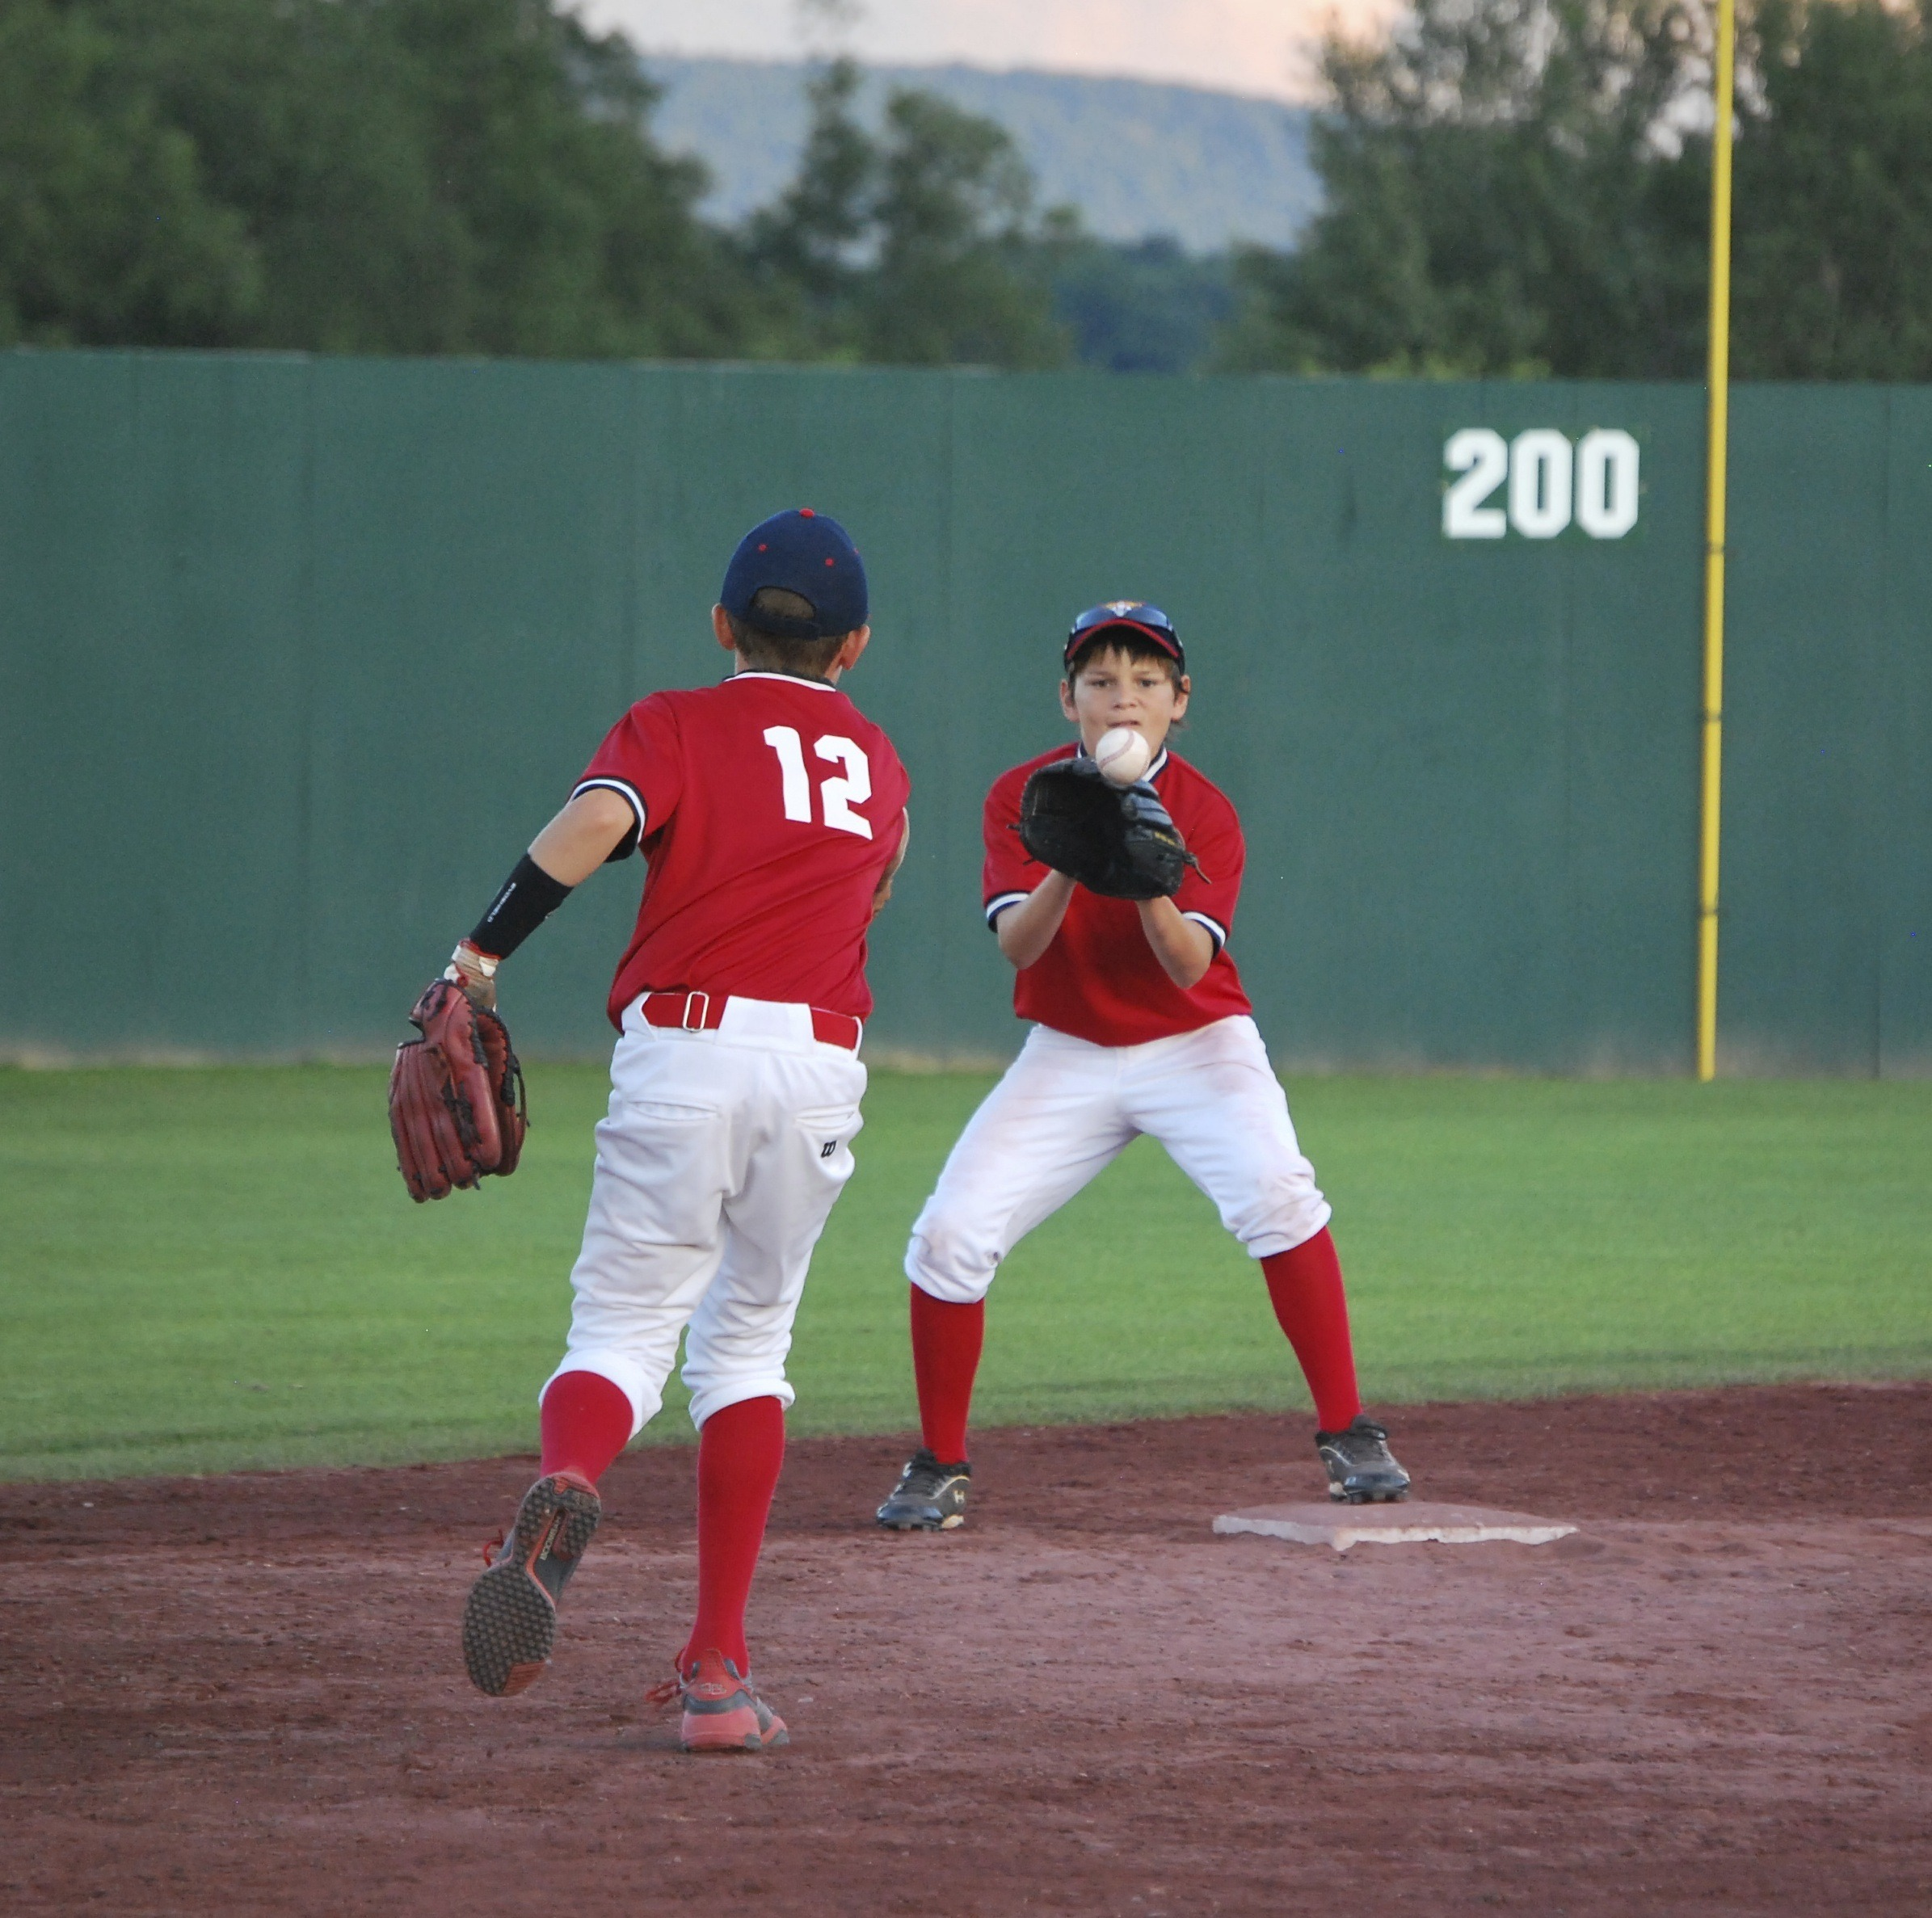 Children S Youth Sports: Teaching Kids To Play Fair